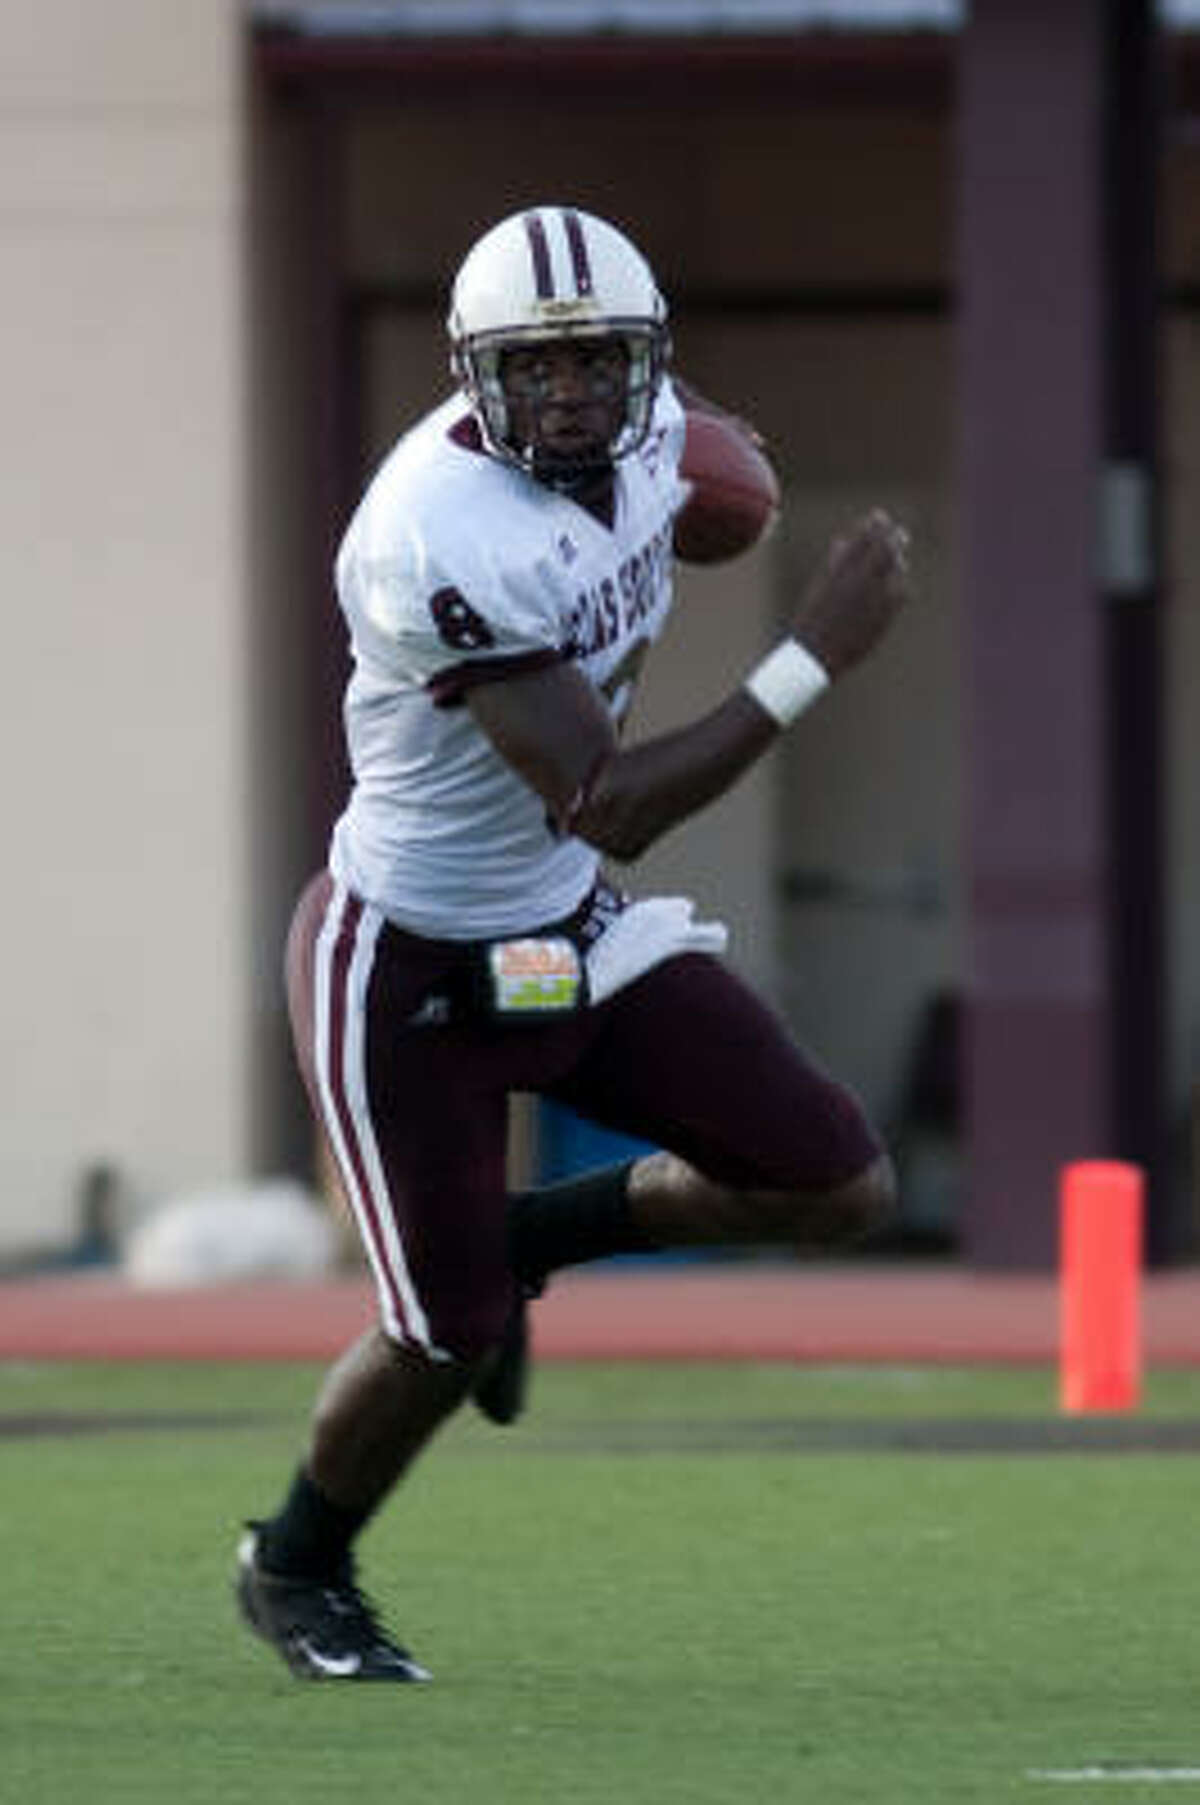 The Texas State defense forces TSU quarterback Arvell Nelson to run in the first quarter.